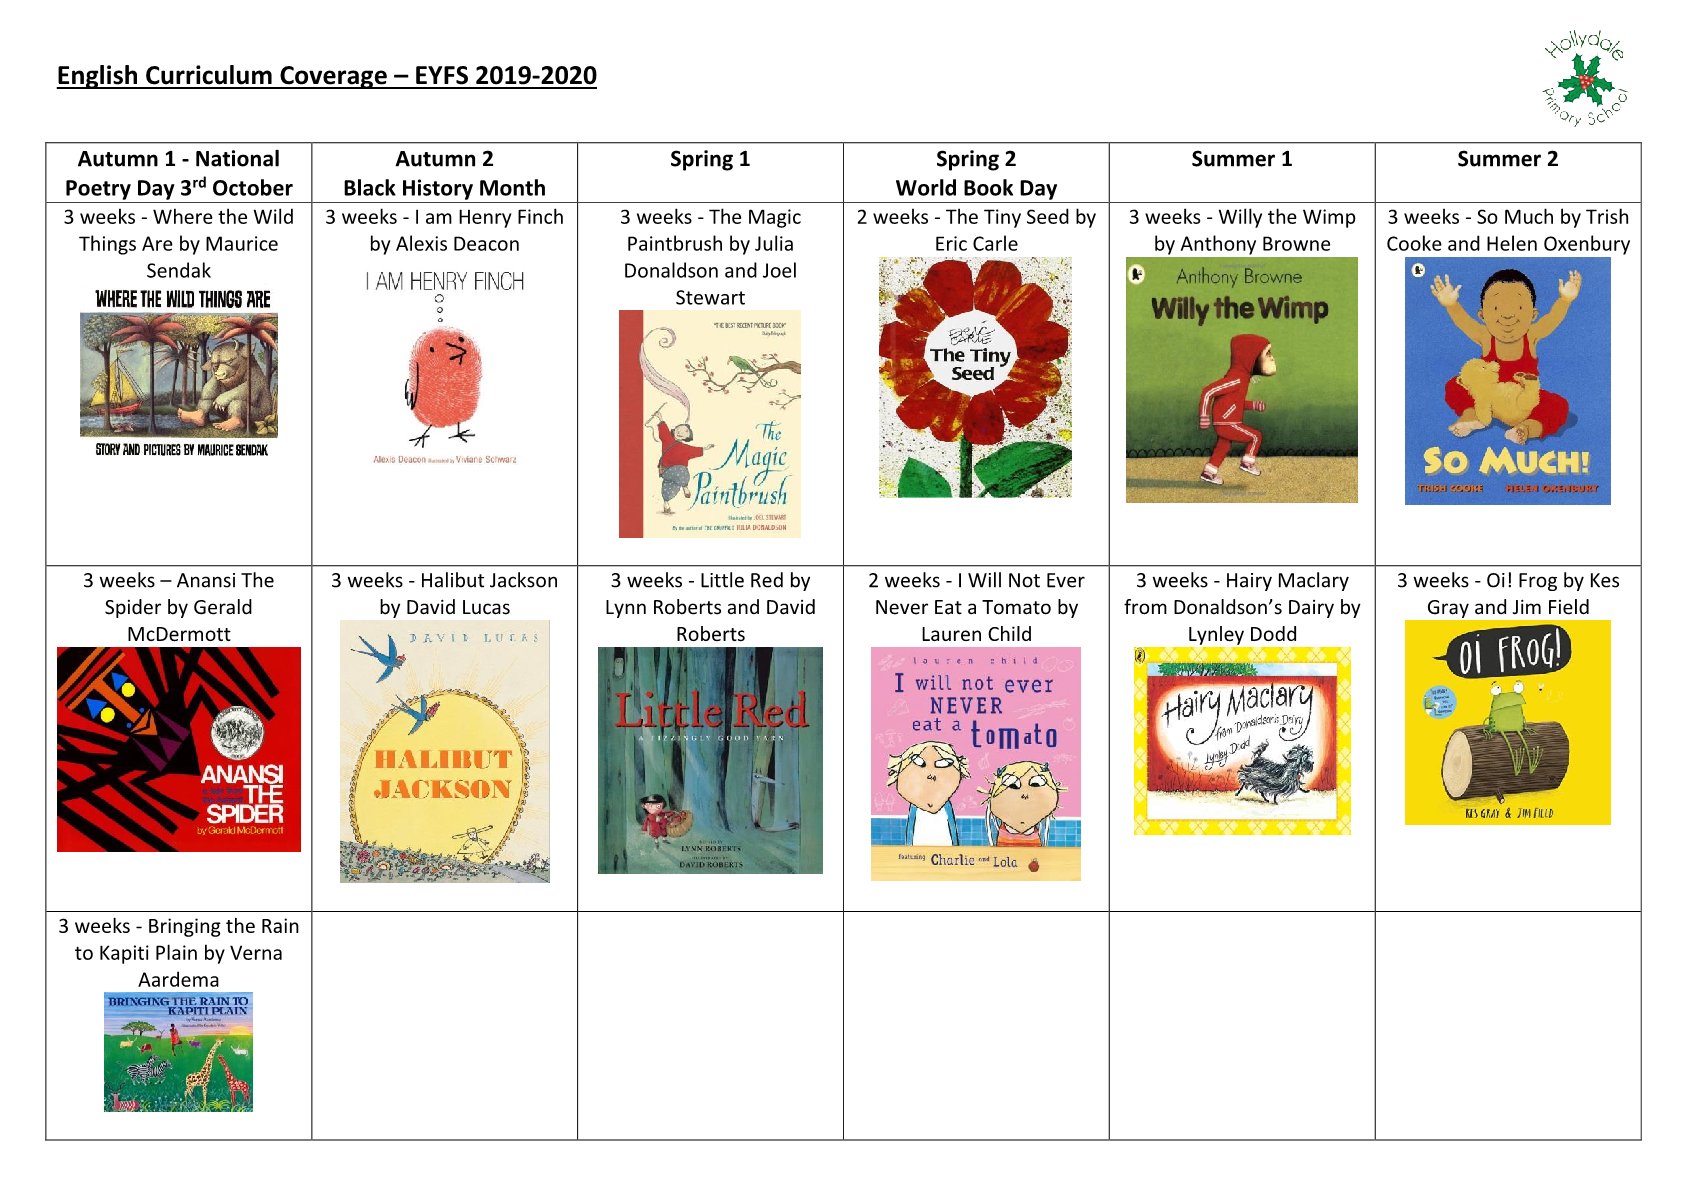 English Curriculum Coverage EYFS